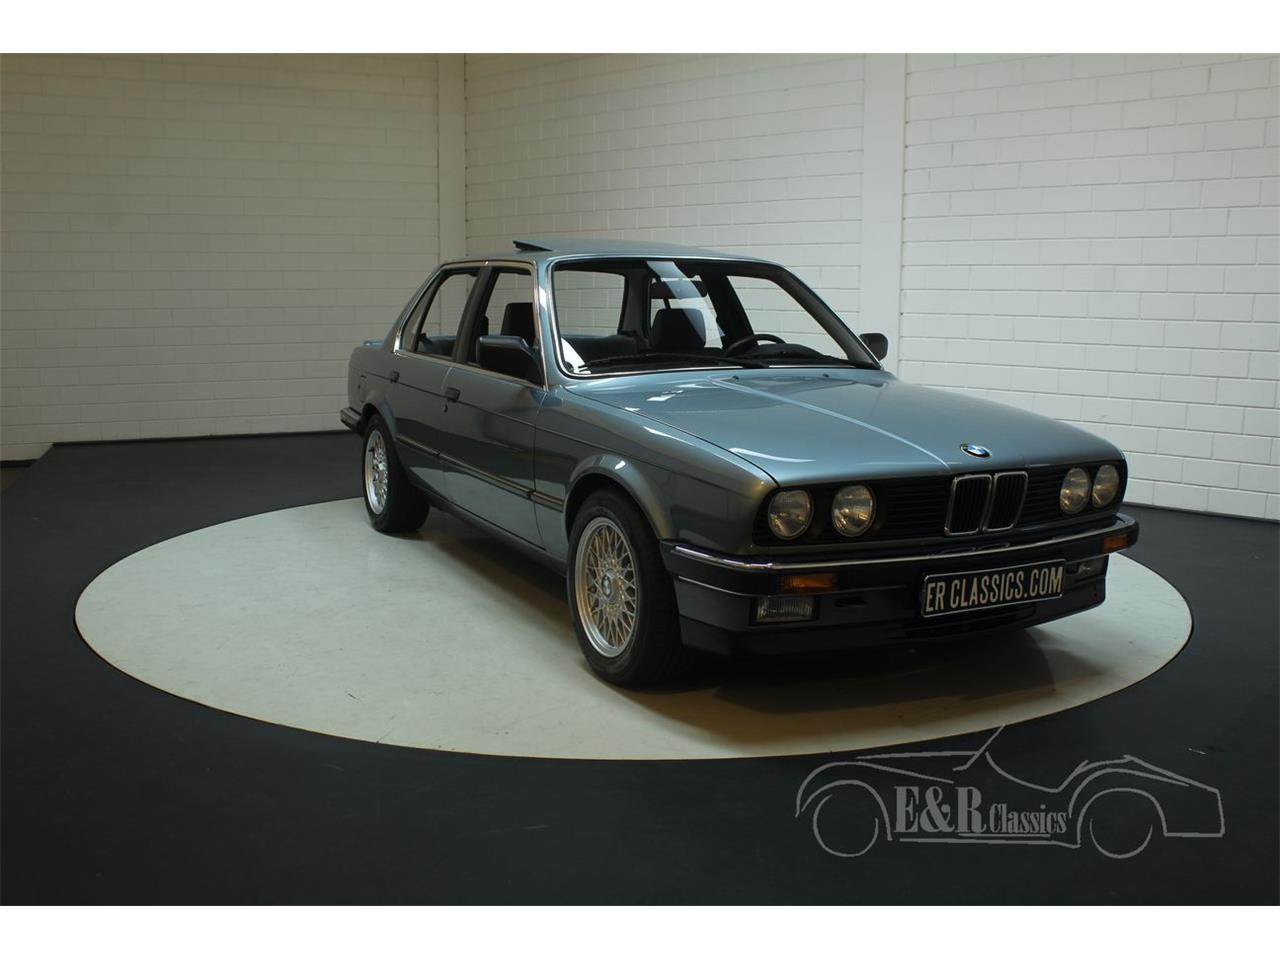 Large Picture of '86 BMW 325i located in - Keine Angabe - Offered by E & R Classics - PGT1